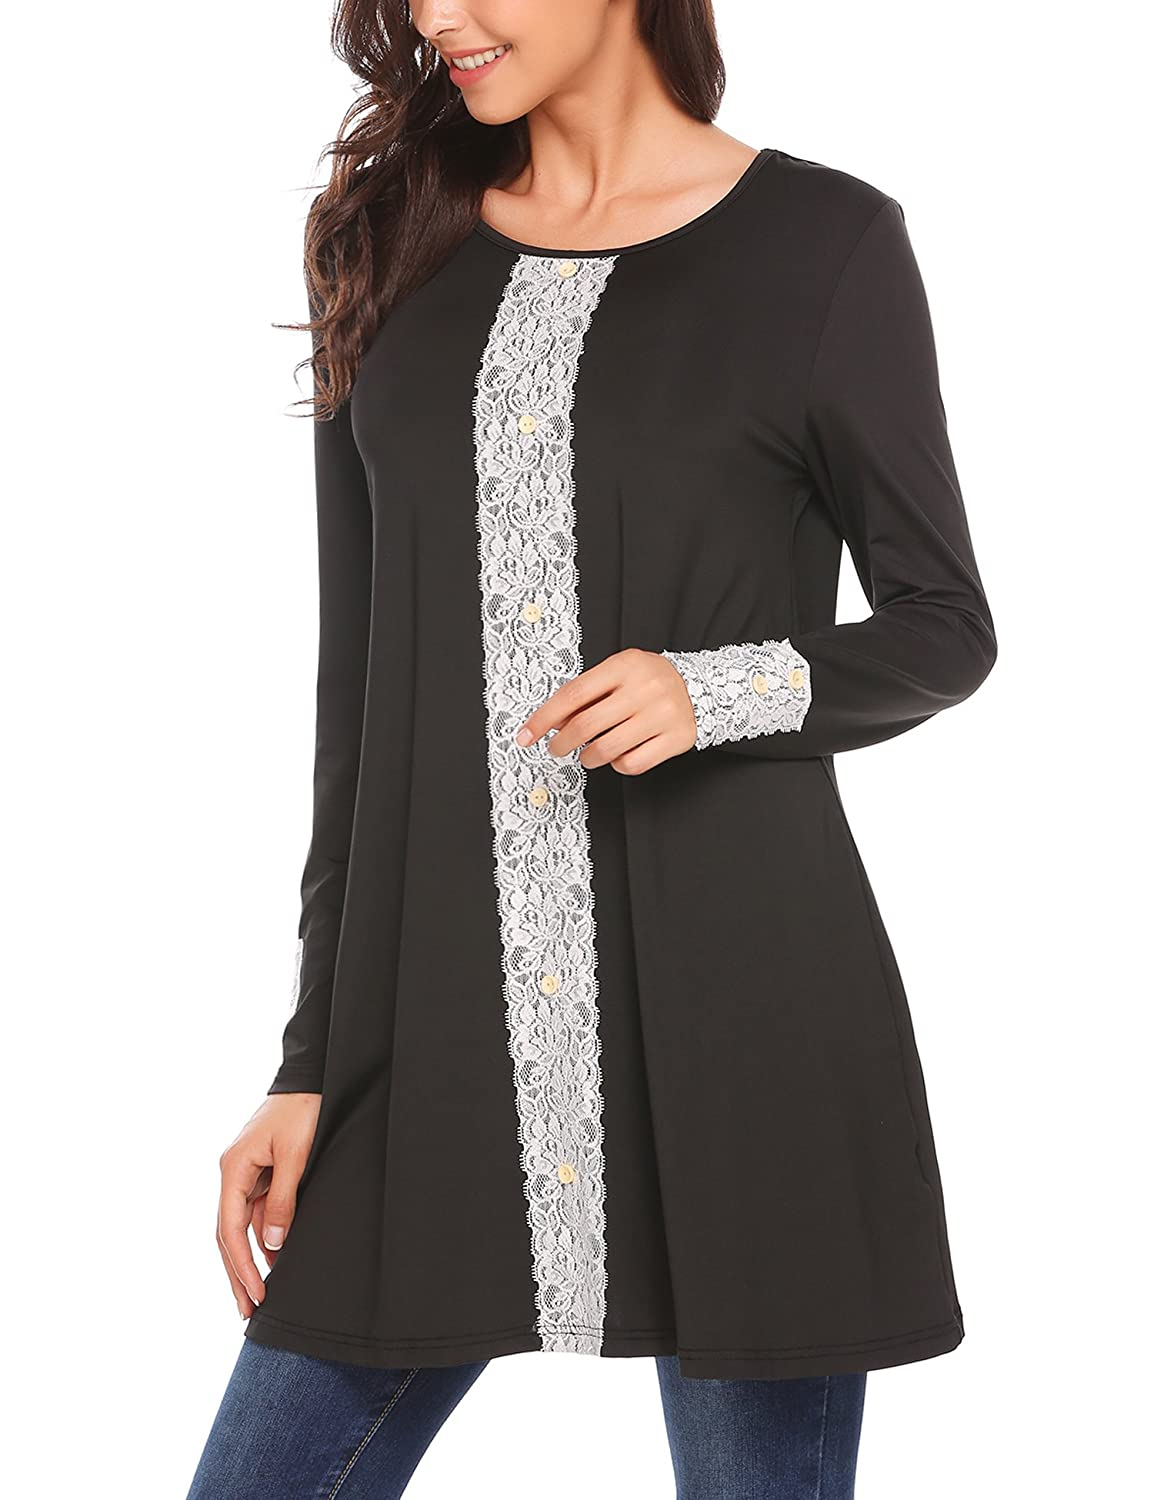 BeautyUU Women Long Flowy Front Lace Long Sleeve Tunic Tops With Button Decor